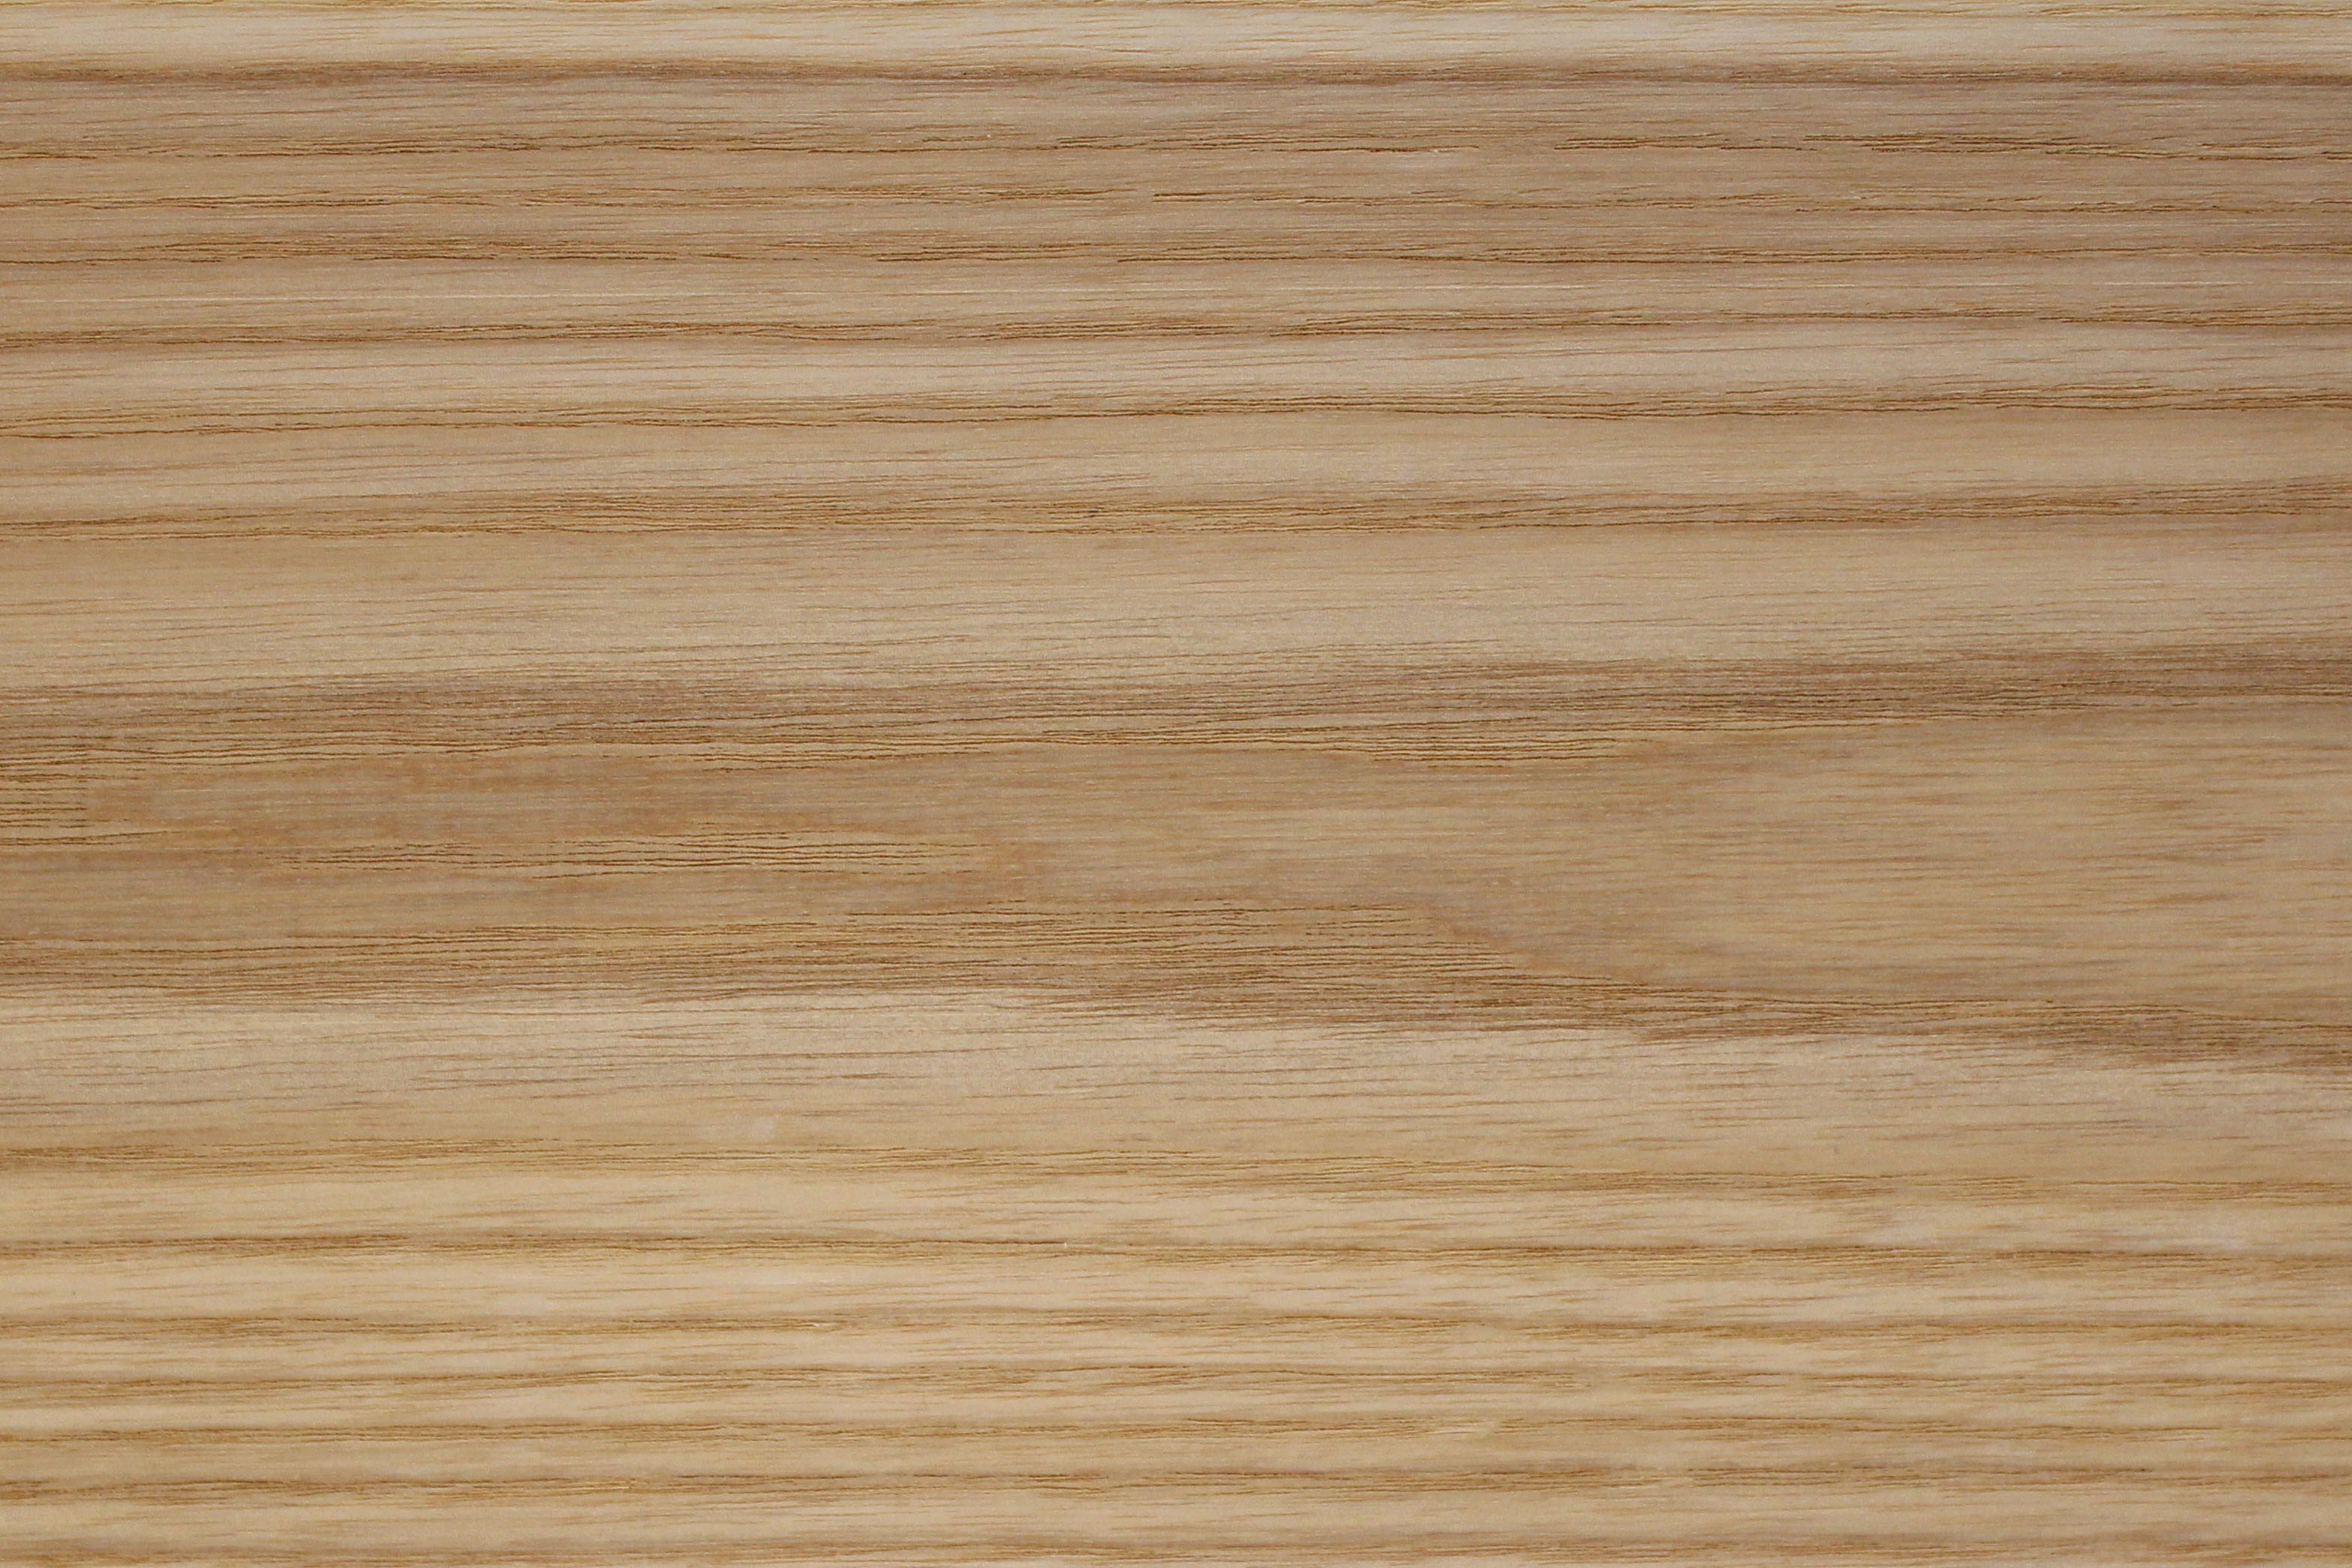 Ash American White Hurford Wholesale